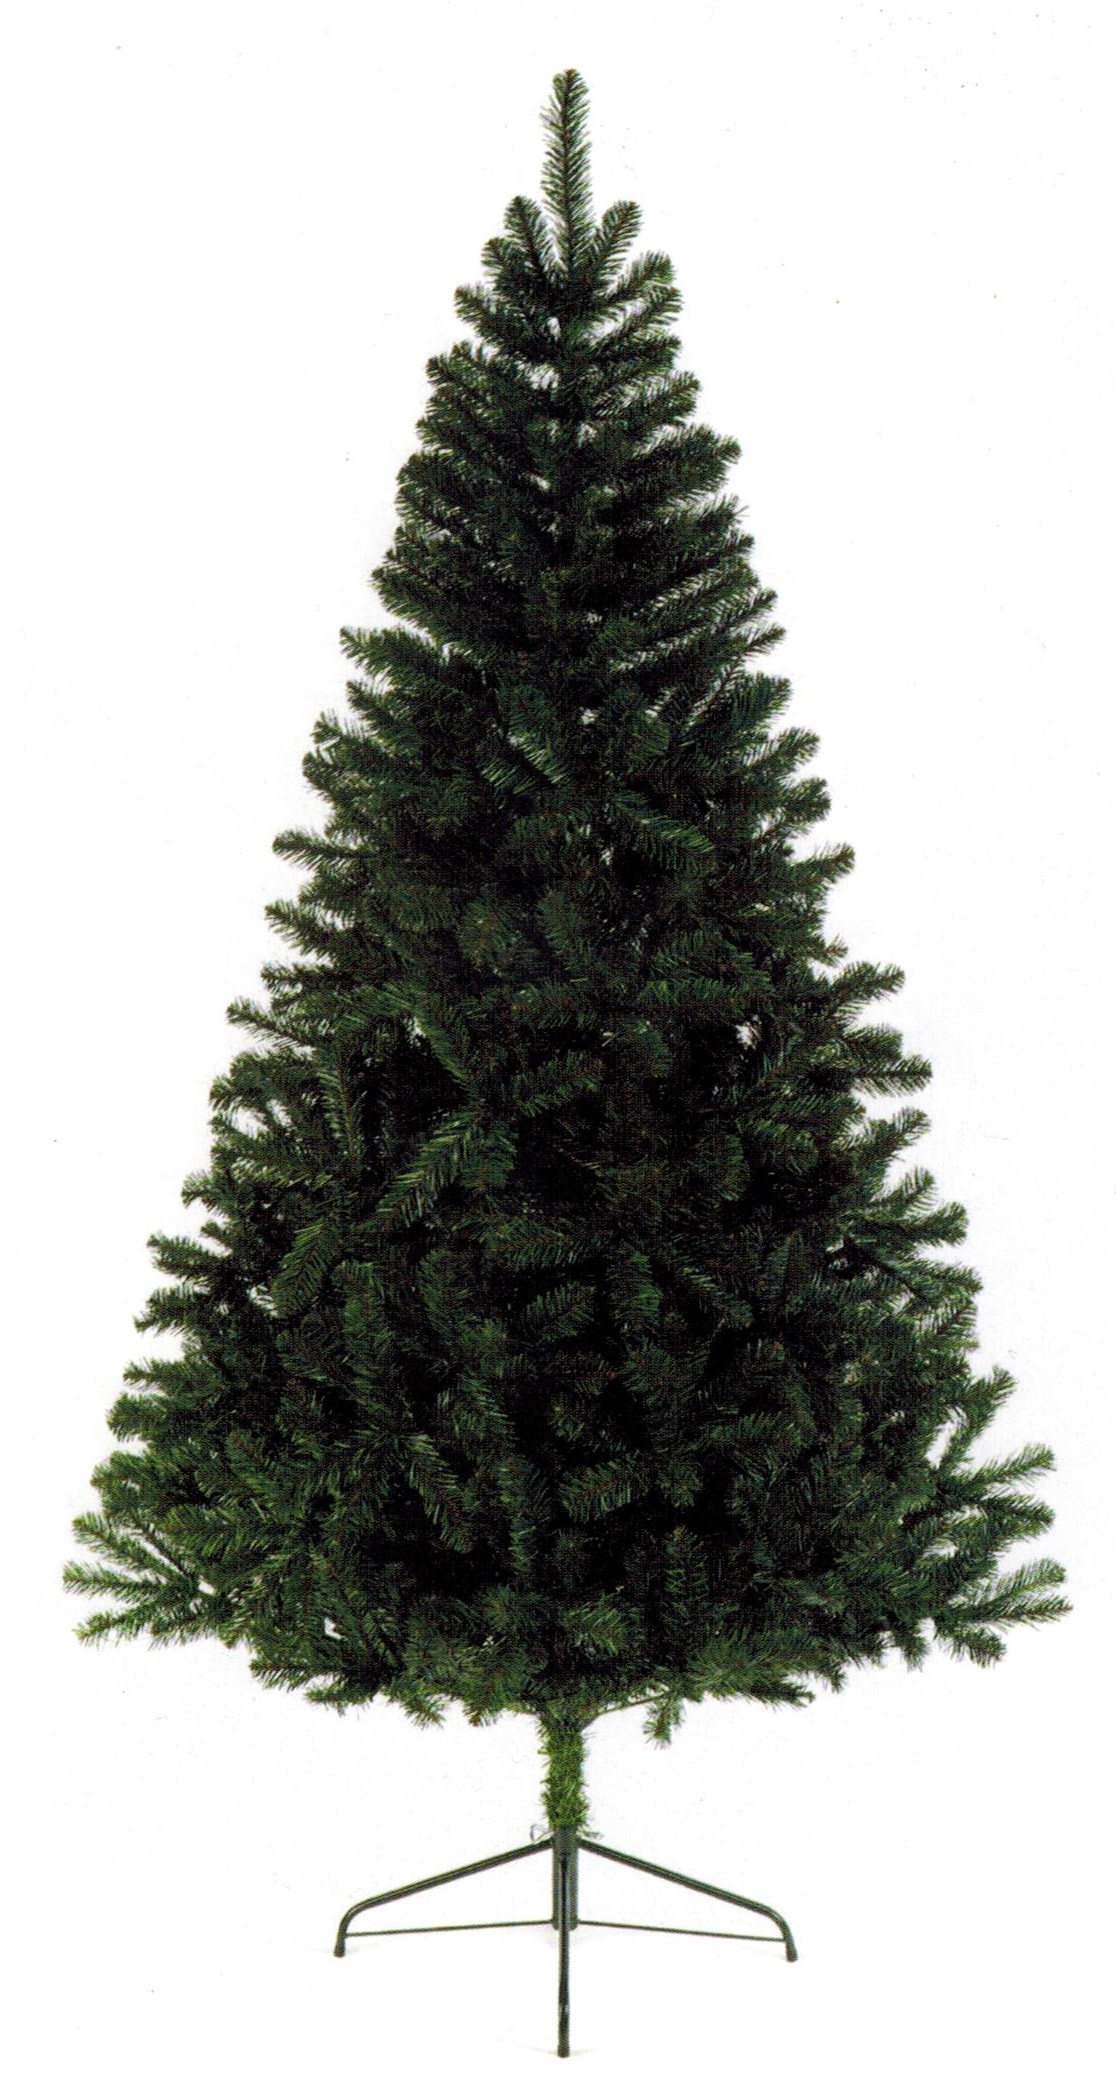 Splendid Buy Quality Artificial Christmas Trees In Leicestershire With Excellent Woodcote Spruce Pepvc Tree With Endearing Garden Products Also Bird Bath In Garden In Addition Preparing Soil For Gardening Vegetables And Walled Garden Designs As Well As Best Garden Design App Additionally Secret Garden Resturant From Sapcotegccouk With   Excellent Buy Quality Artificial Christmas Trees In Leicestershire With Endearing Woodcote Spruce Pepvc Tree And Splendid Garden Products Also Bird Bath In Garden In Addition Preparing Soil For Gardening Vegetables From Sapcotegccouk